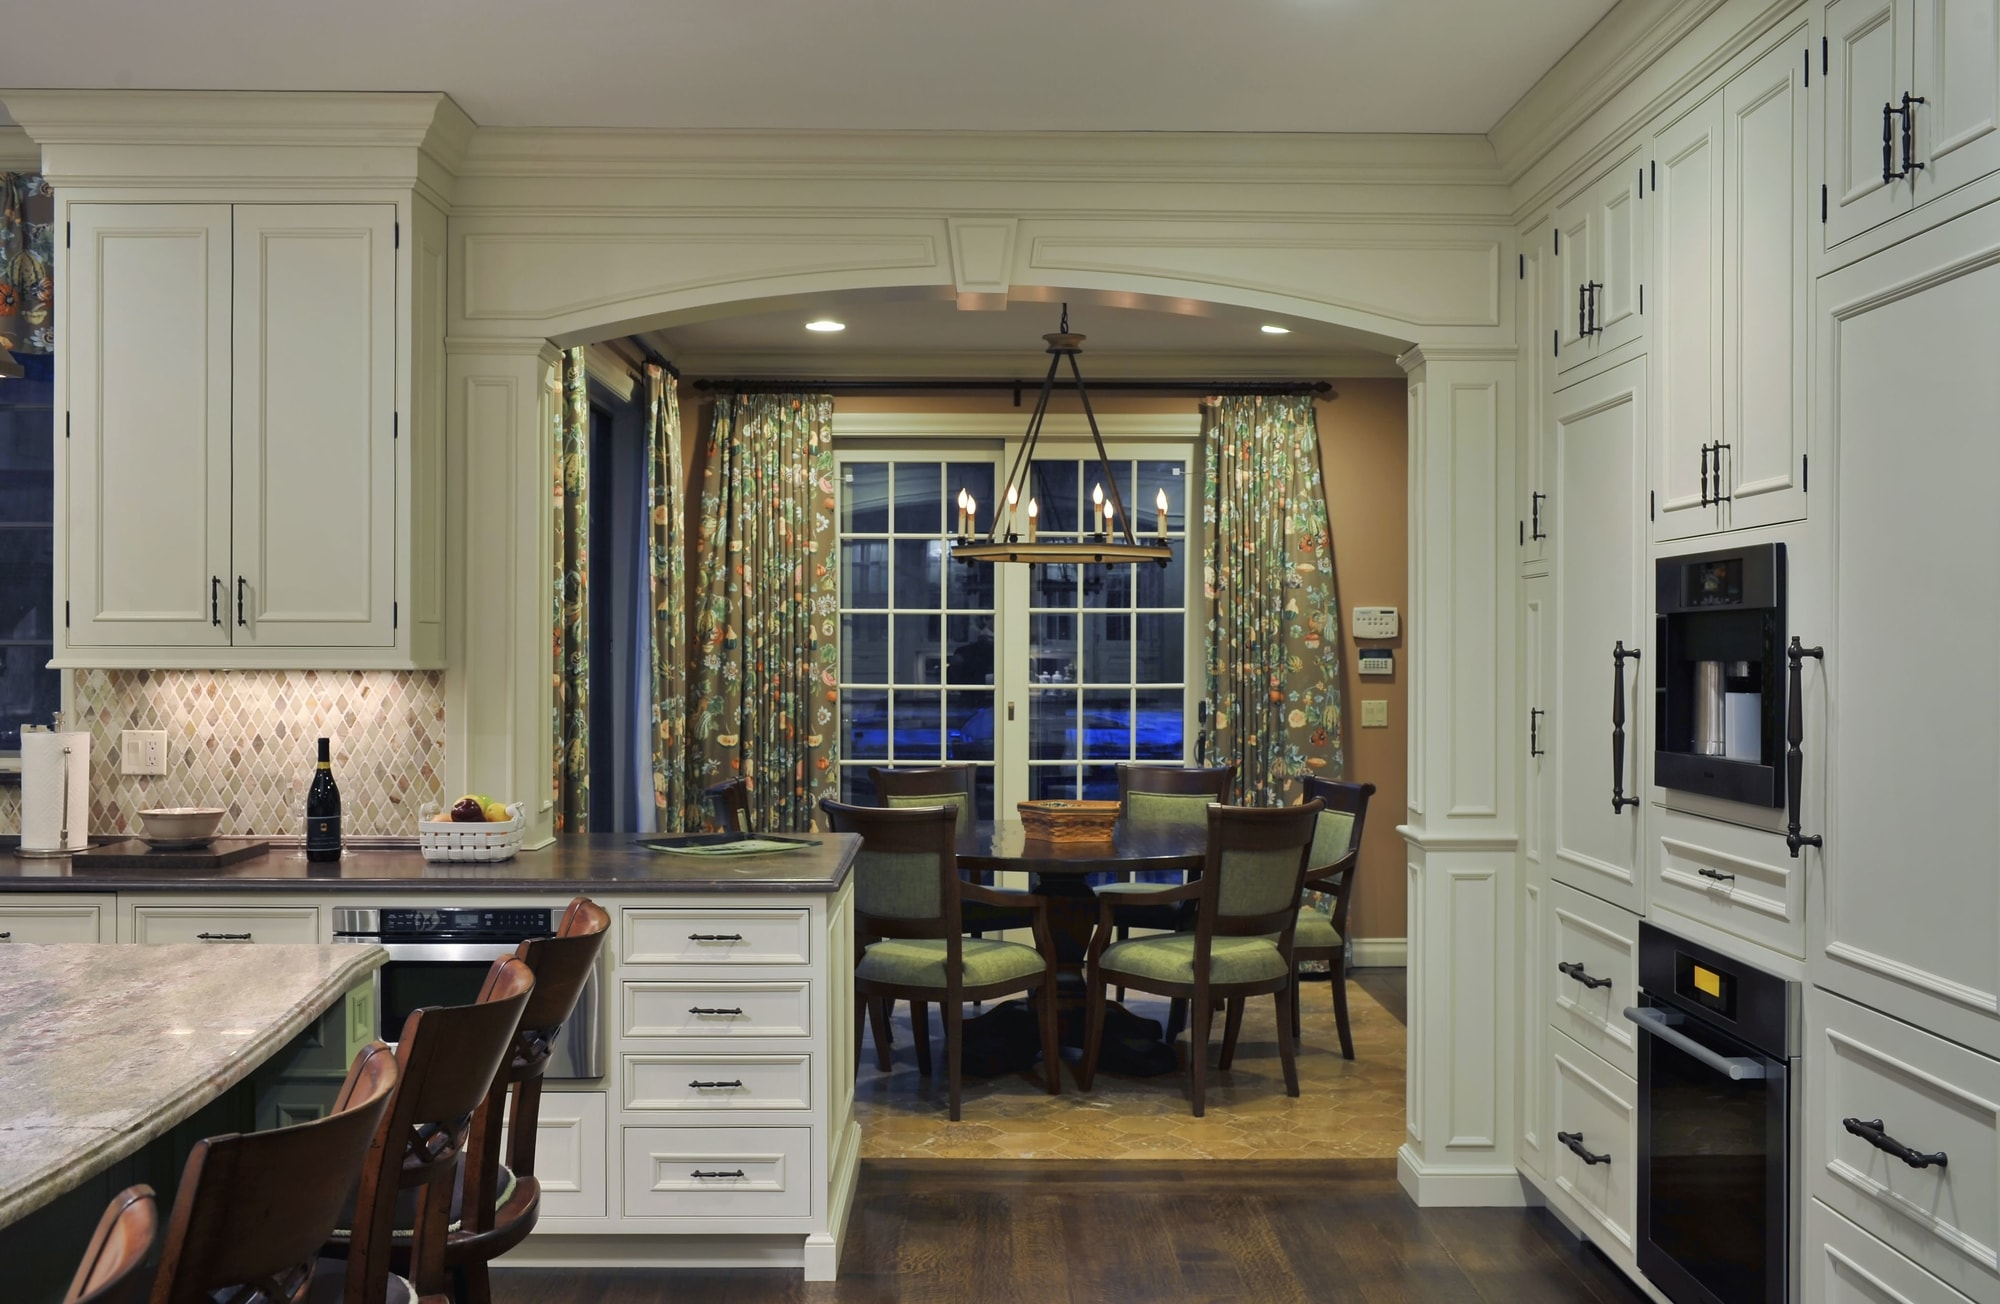 Traditional style kitchen with small eating area